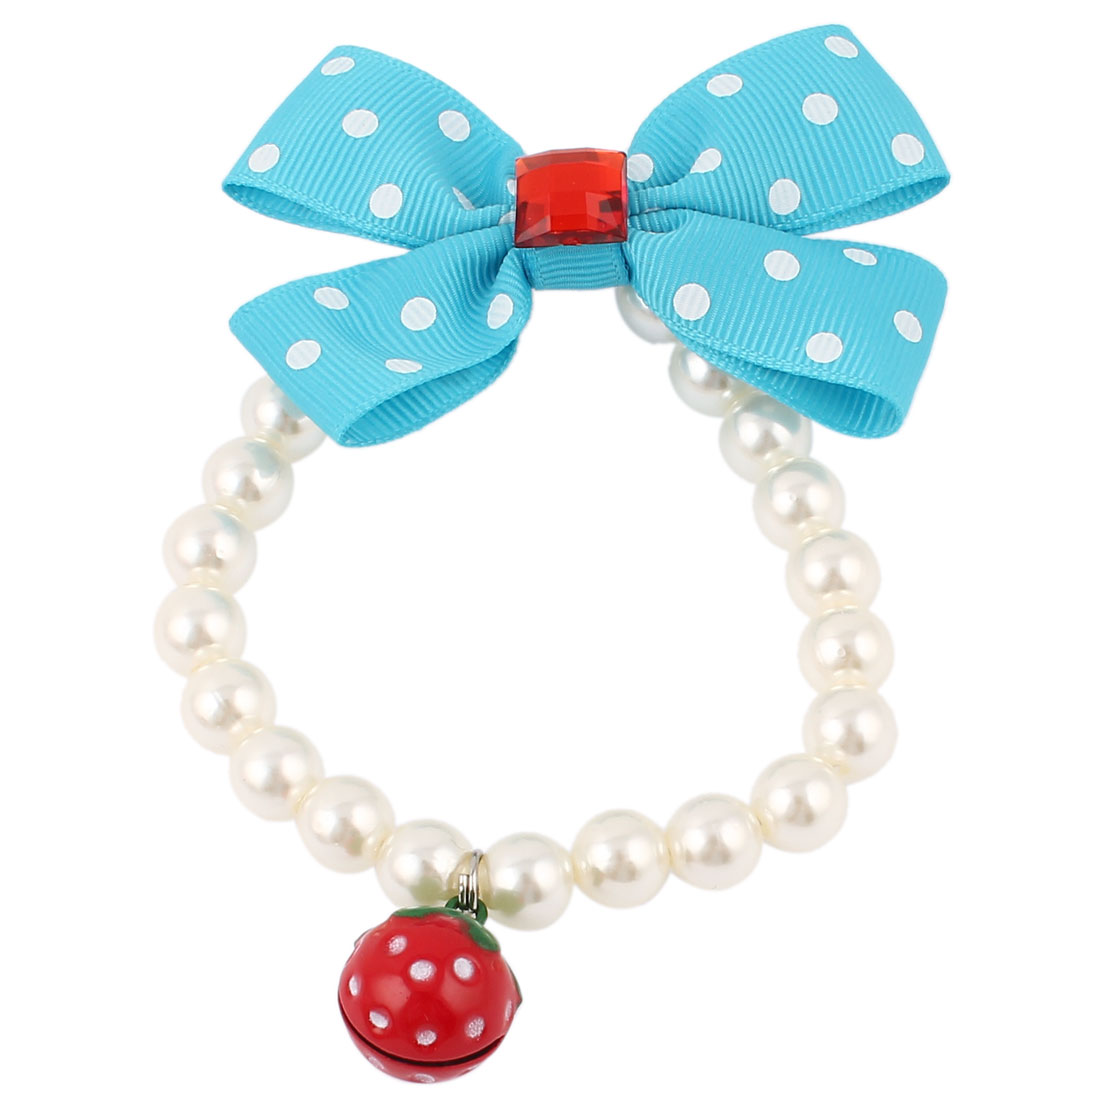 Strawberry Bell Pendant Bowknot Accent Pet Dog Plastic Beads Imitation Pearls Collar Necklace White Blue XS